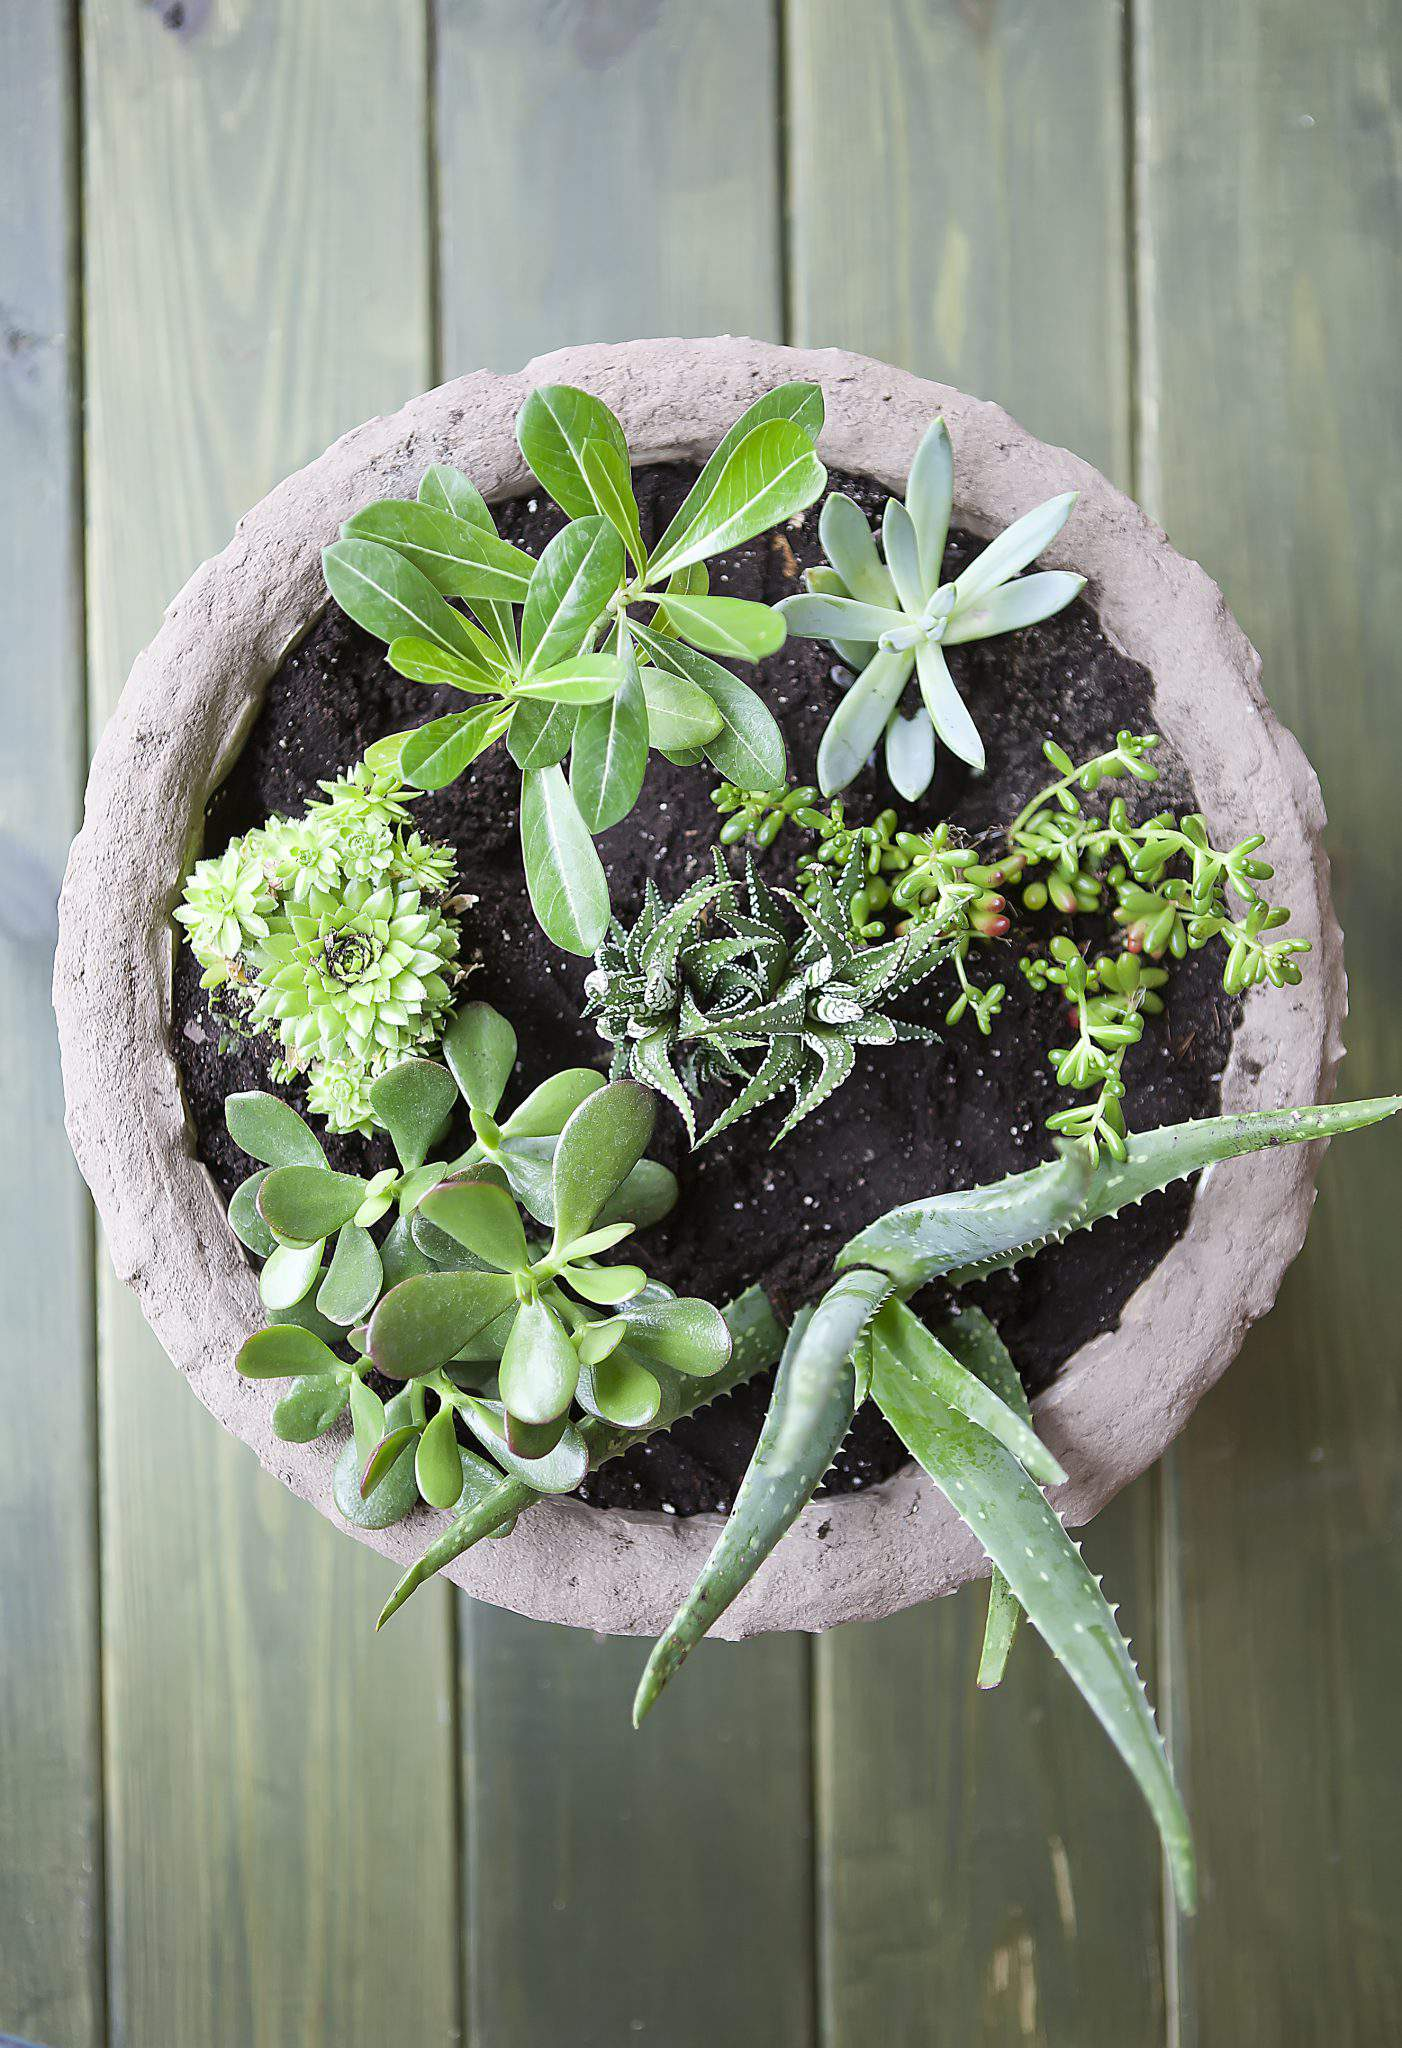 With Summer Quickly Winding Down I M Continuing My End Of The Season Gardening Theme Another Way To Bring Lovely Greenery Indoors